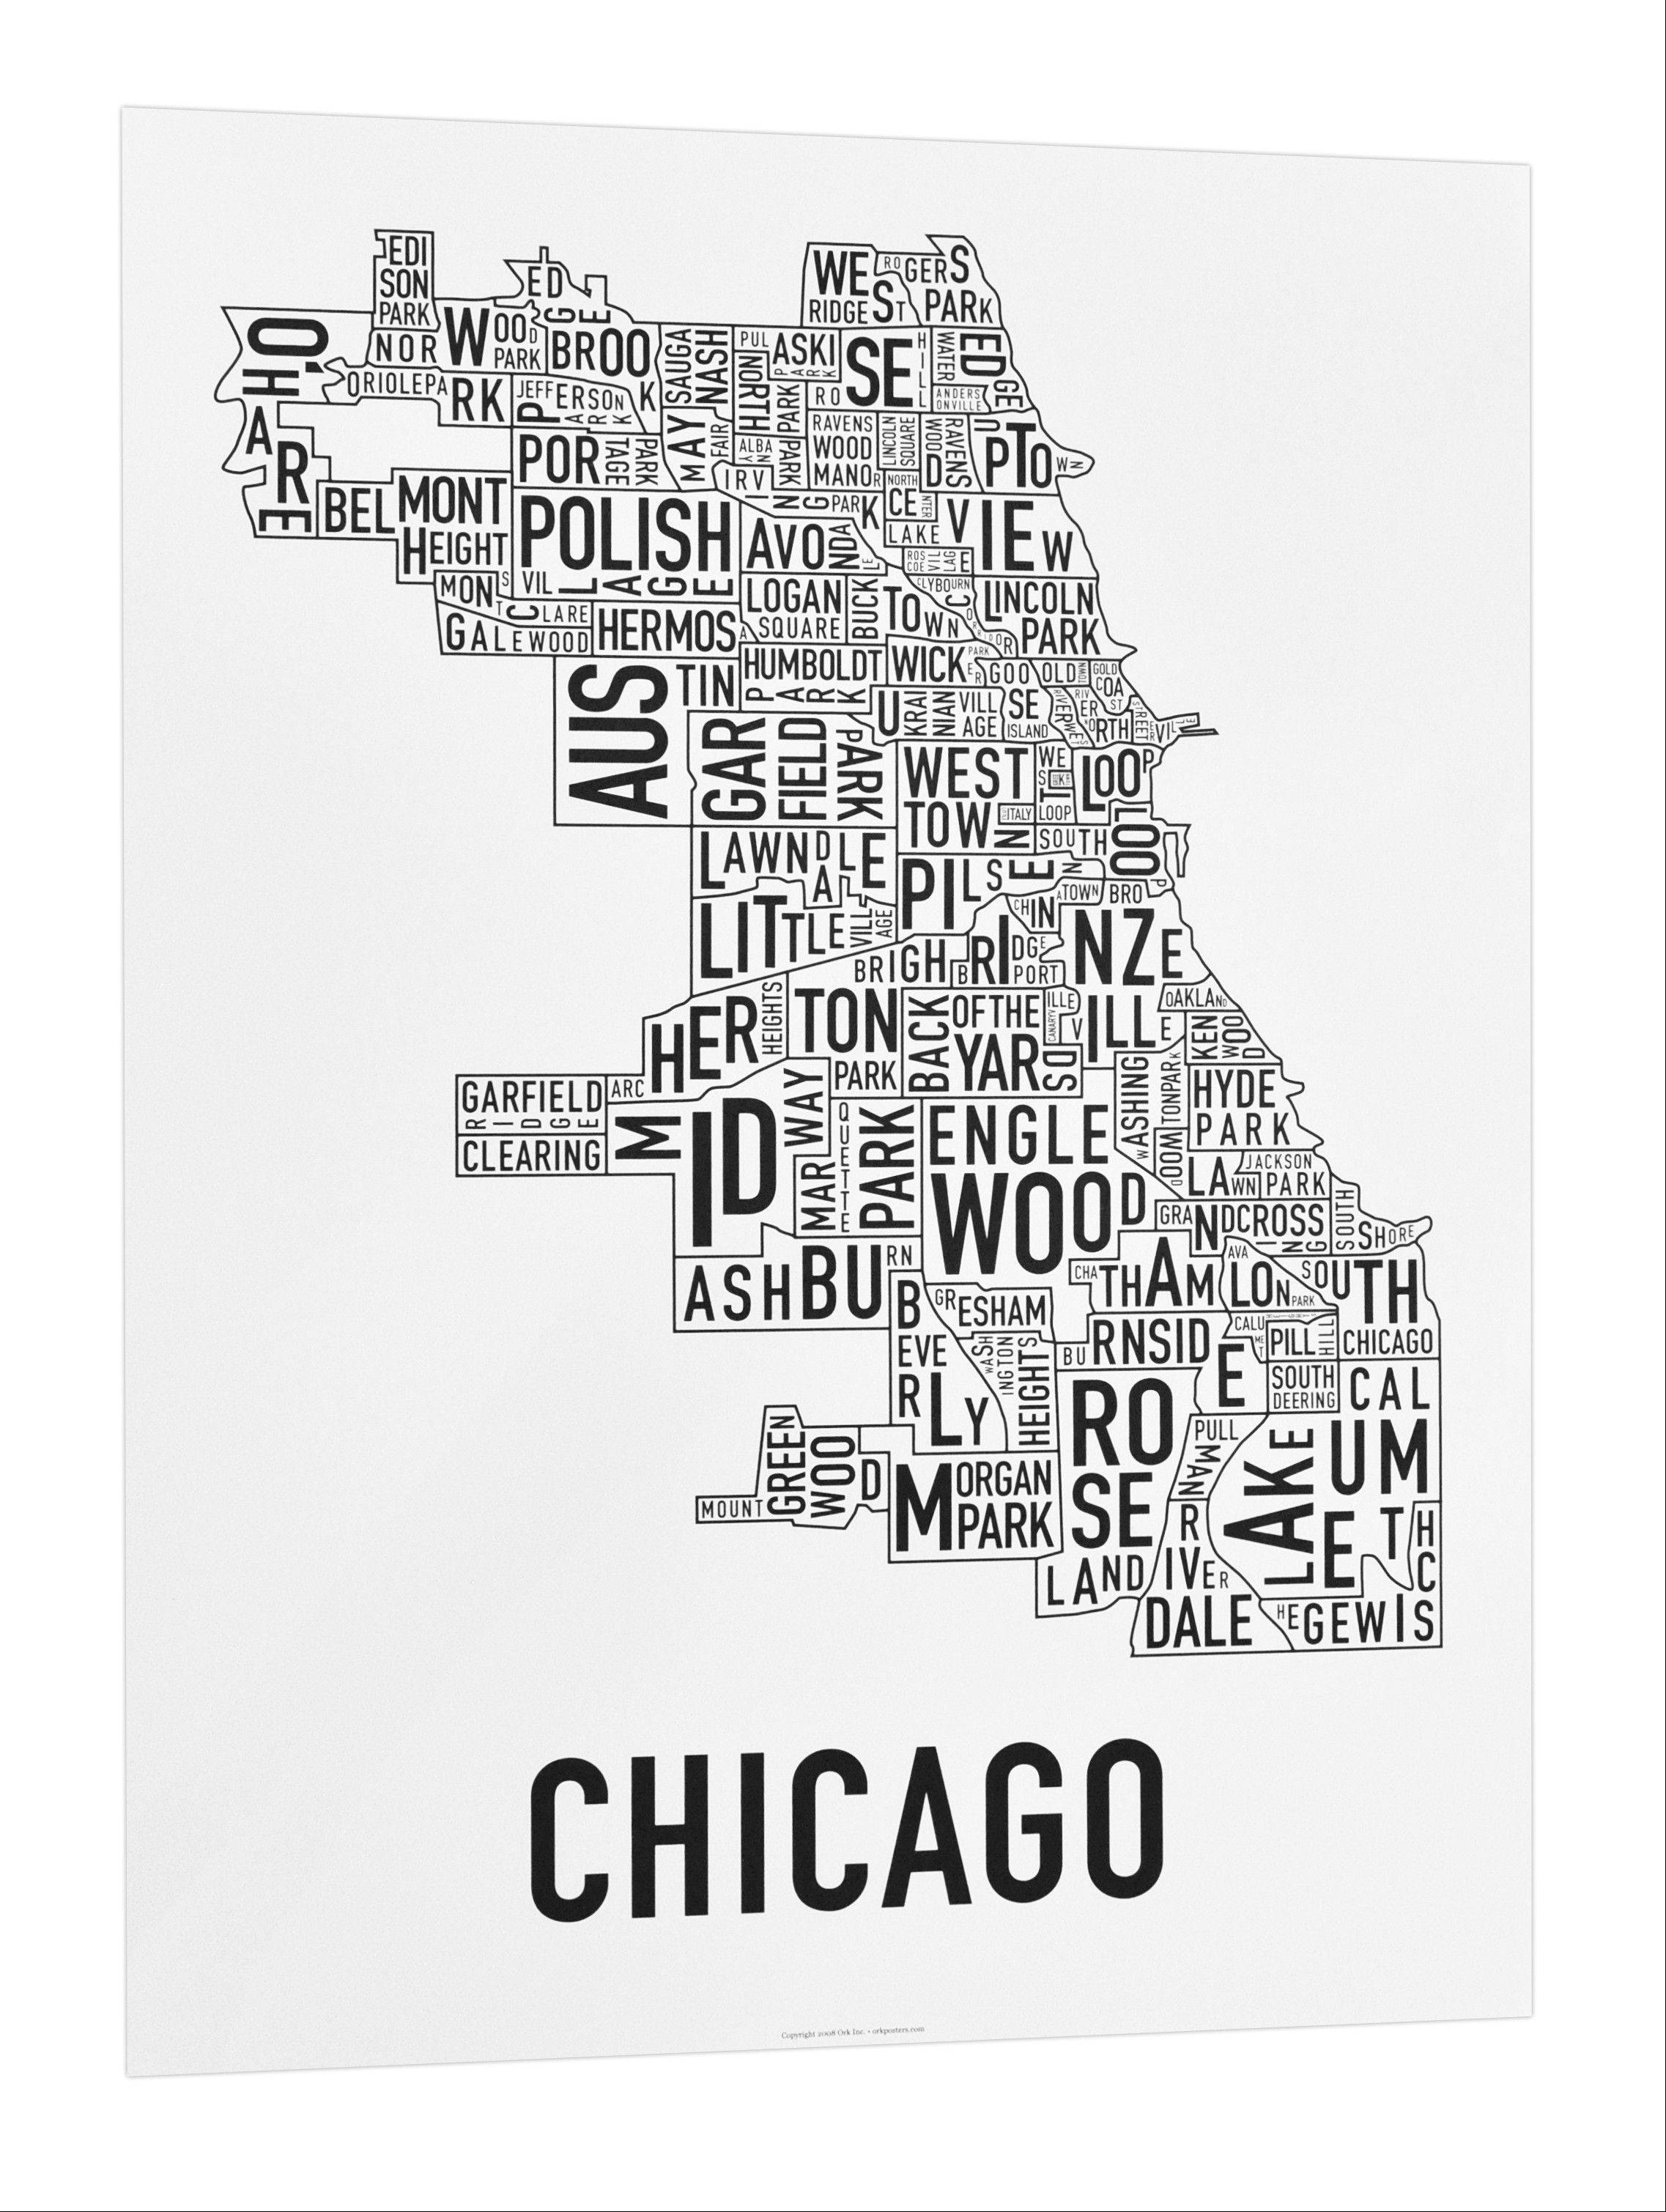 Jenny Beorkrem, a designer and founder of Ork Posters in Chicago, has created neighborhood maps of various cities around the country.